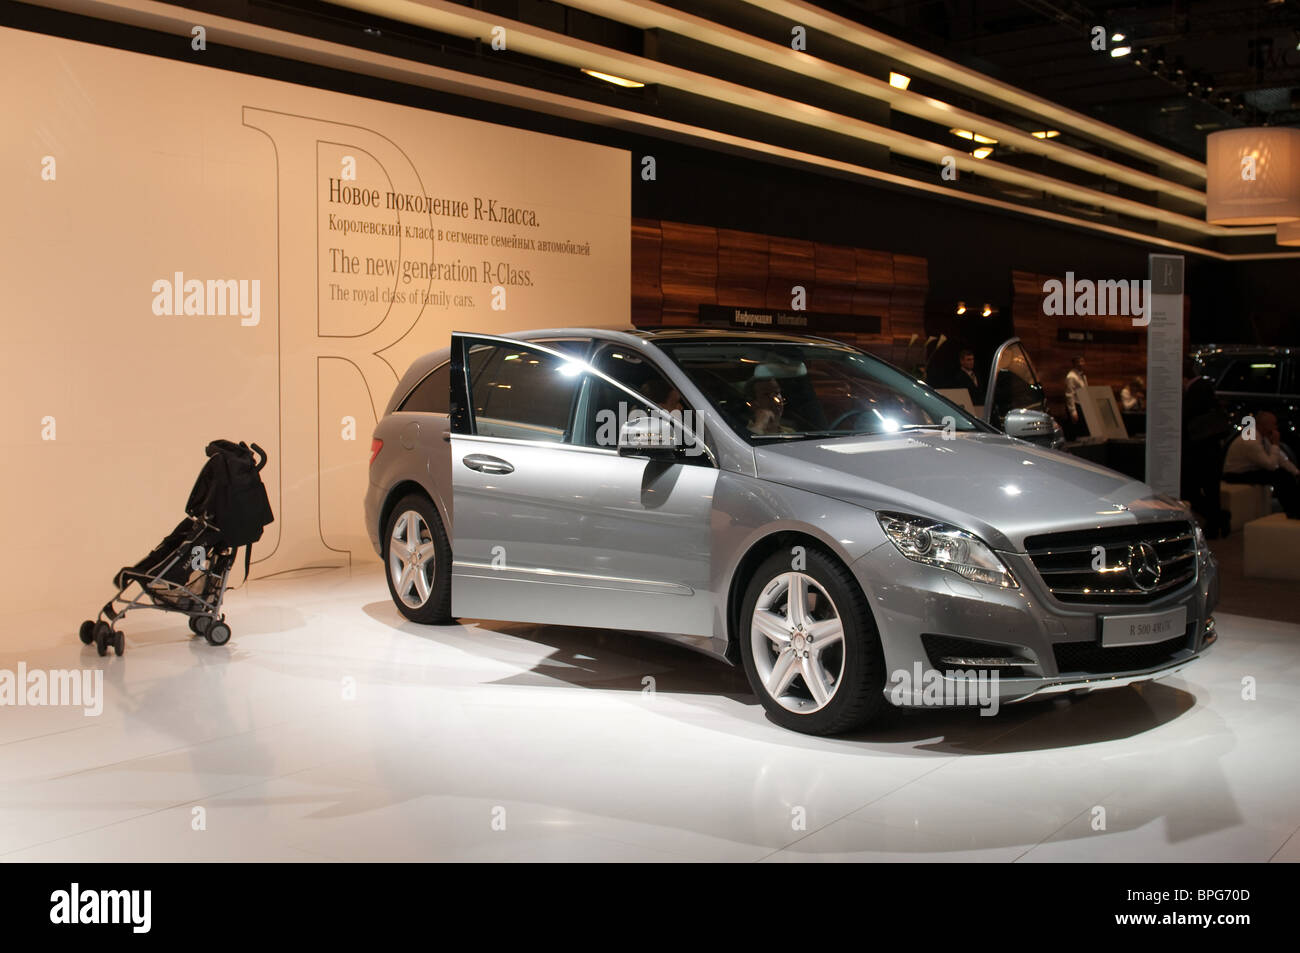 MOSCOW, RUSSIA - August 26: Moscow International Automobile Salon 2010. Mercedes R-Class New generation - russian - Stock Image